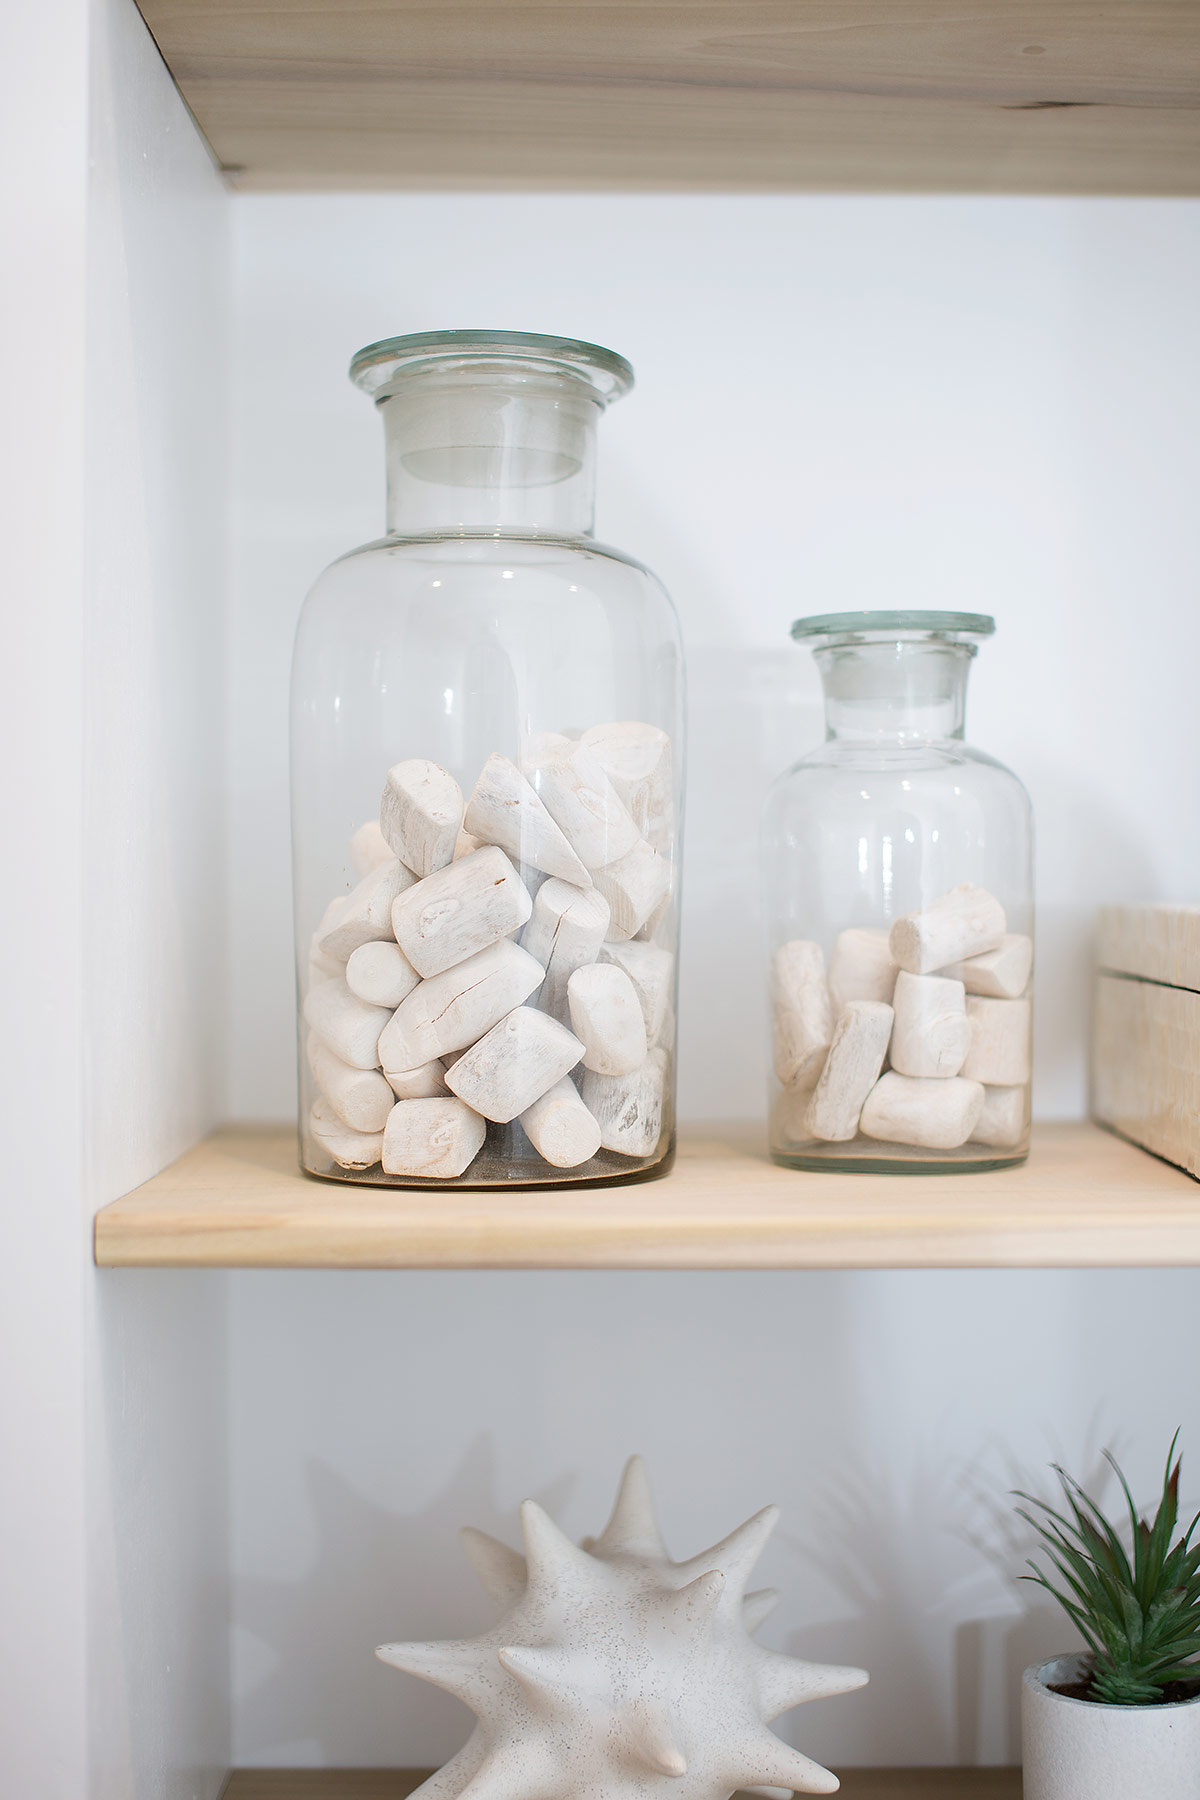 Glass bottles with coastal pebbles on built-in shelves in guest bathroom